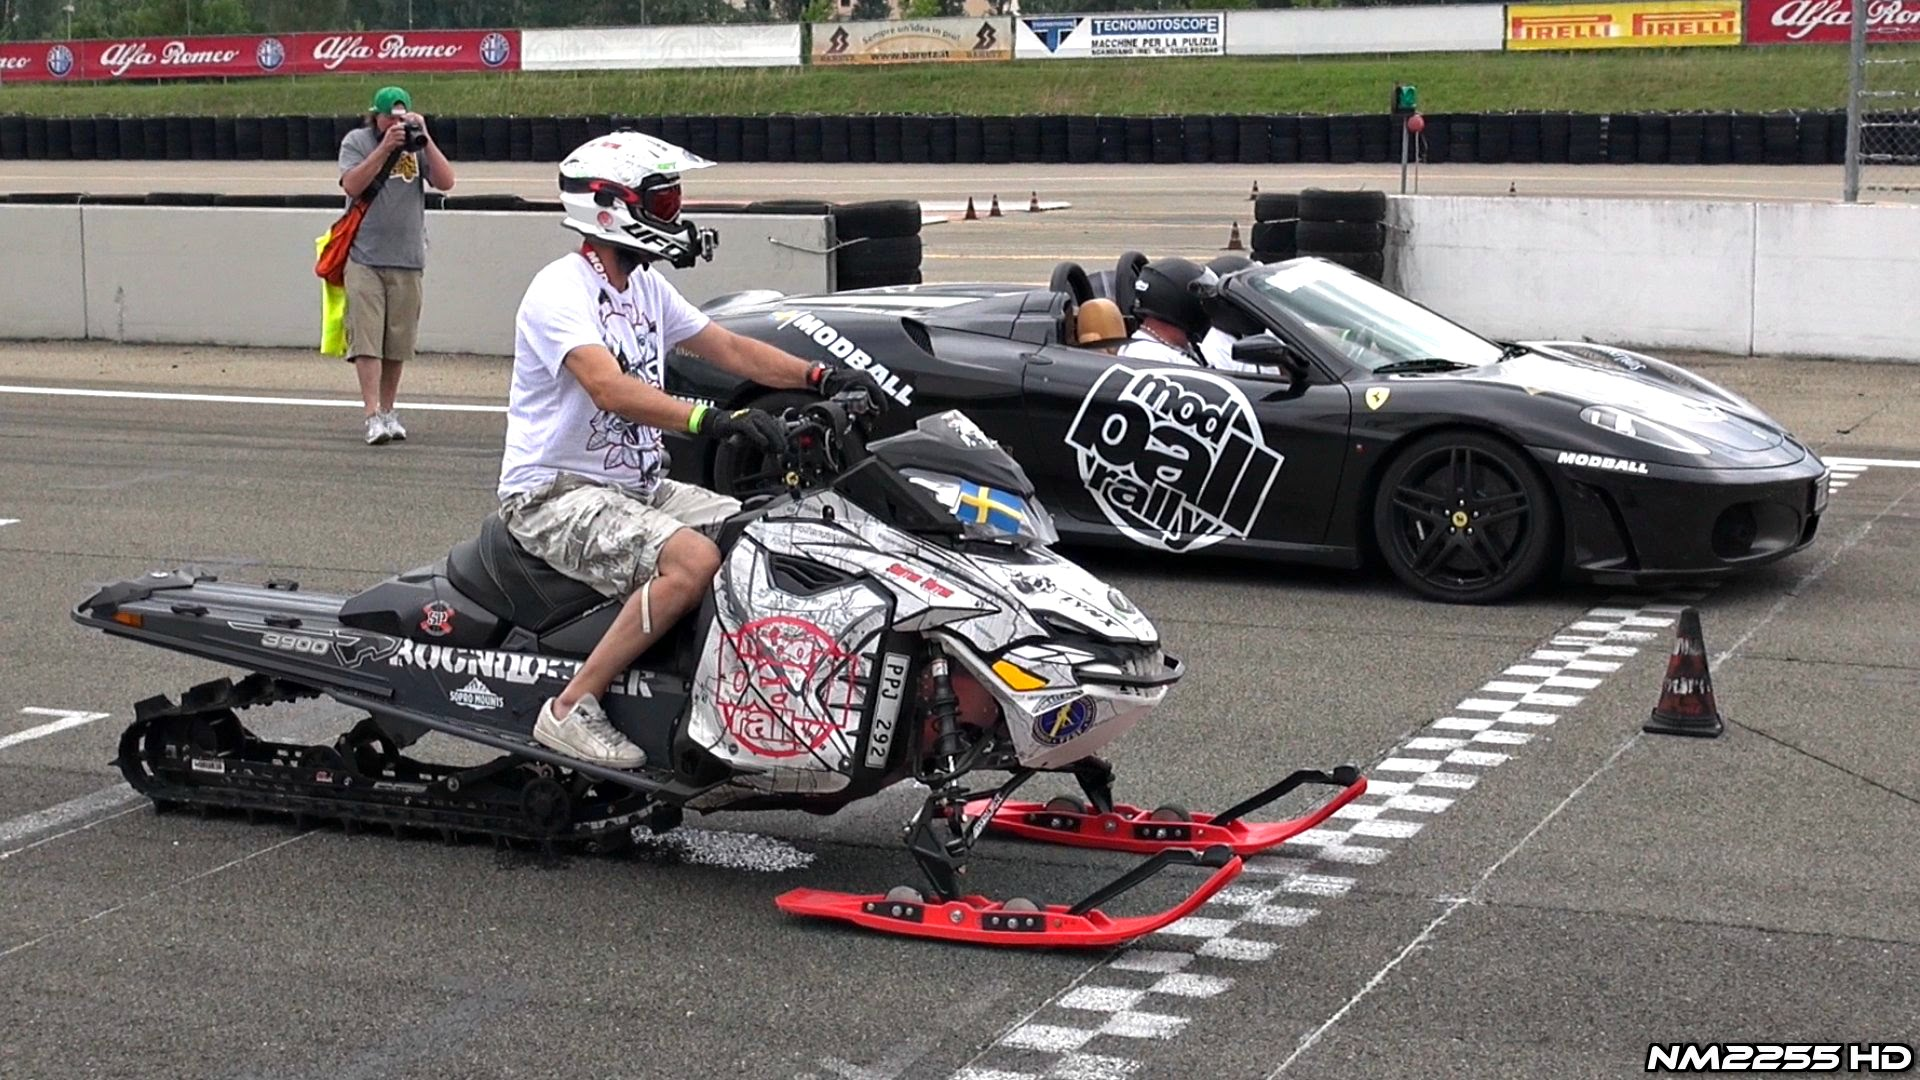 A BADASS Bagger Goes Up Against Mini Dragster And Suzuki Drag Bike